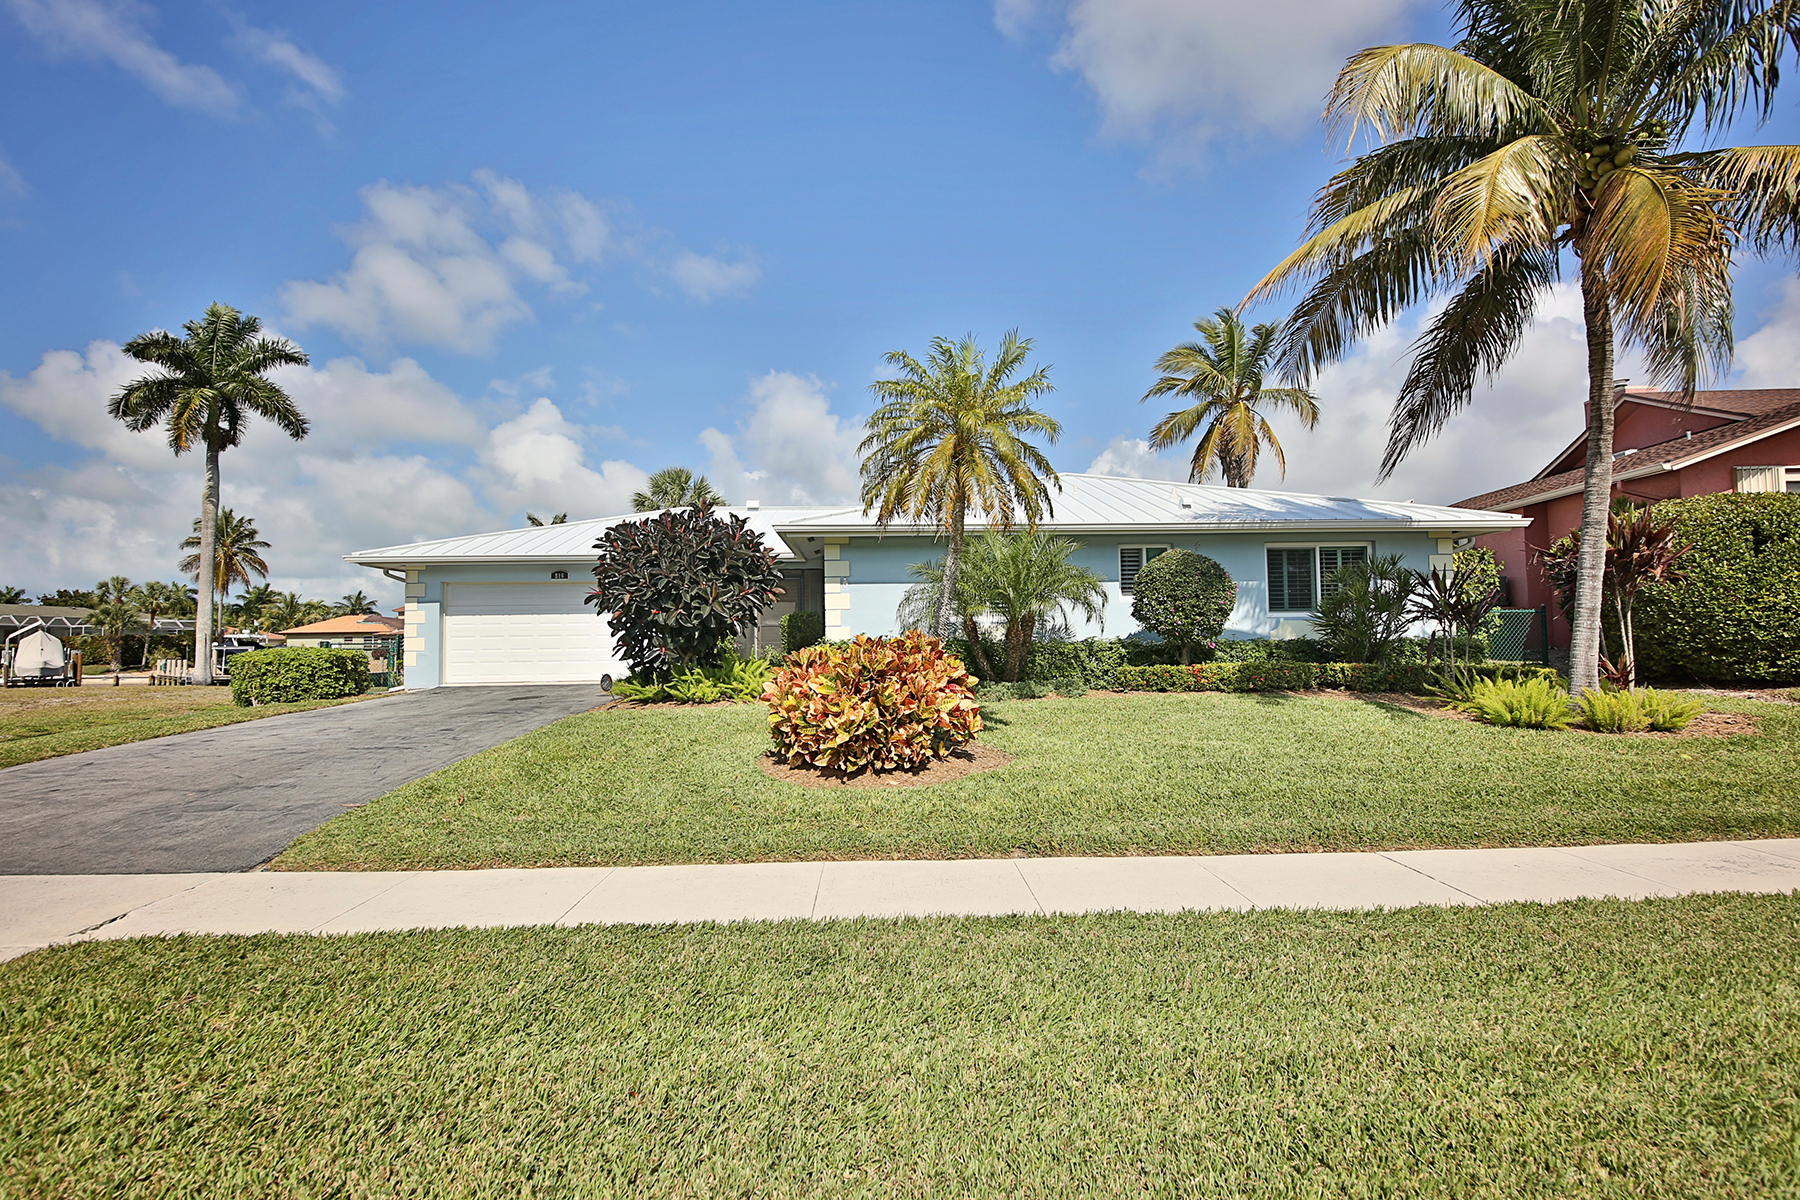 Single Family Home for Sale at MARCO ISLAND 816 Manor Marco Island, Florida, 34145 United States